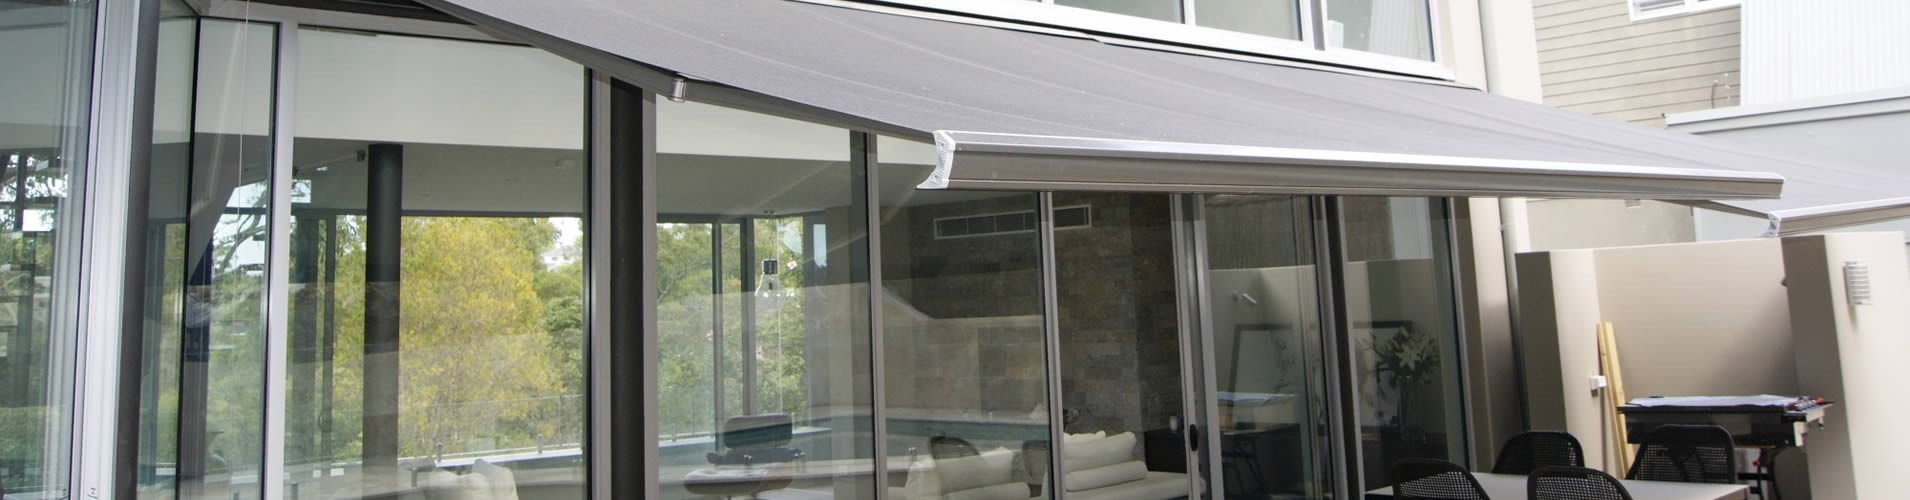 Contact Premier Rollout Awnings Palm Beach Fort Lauderdale